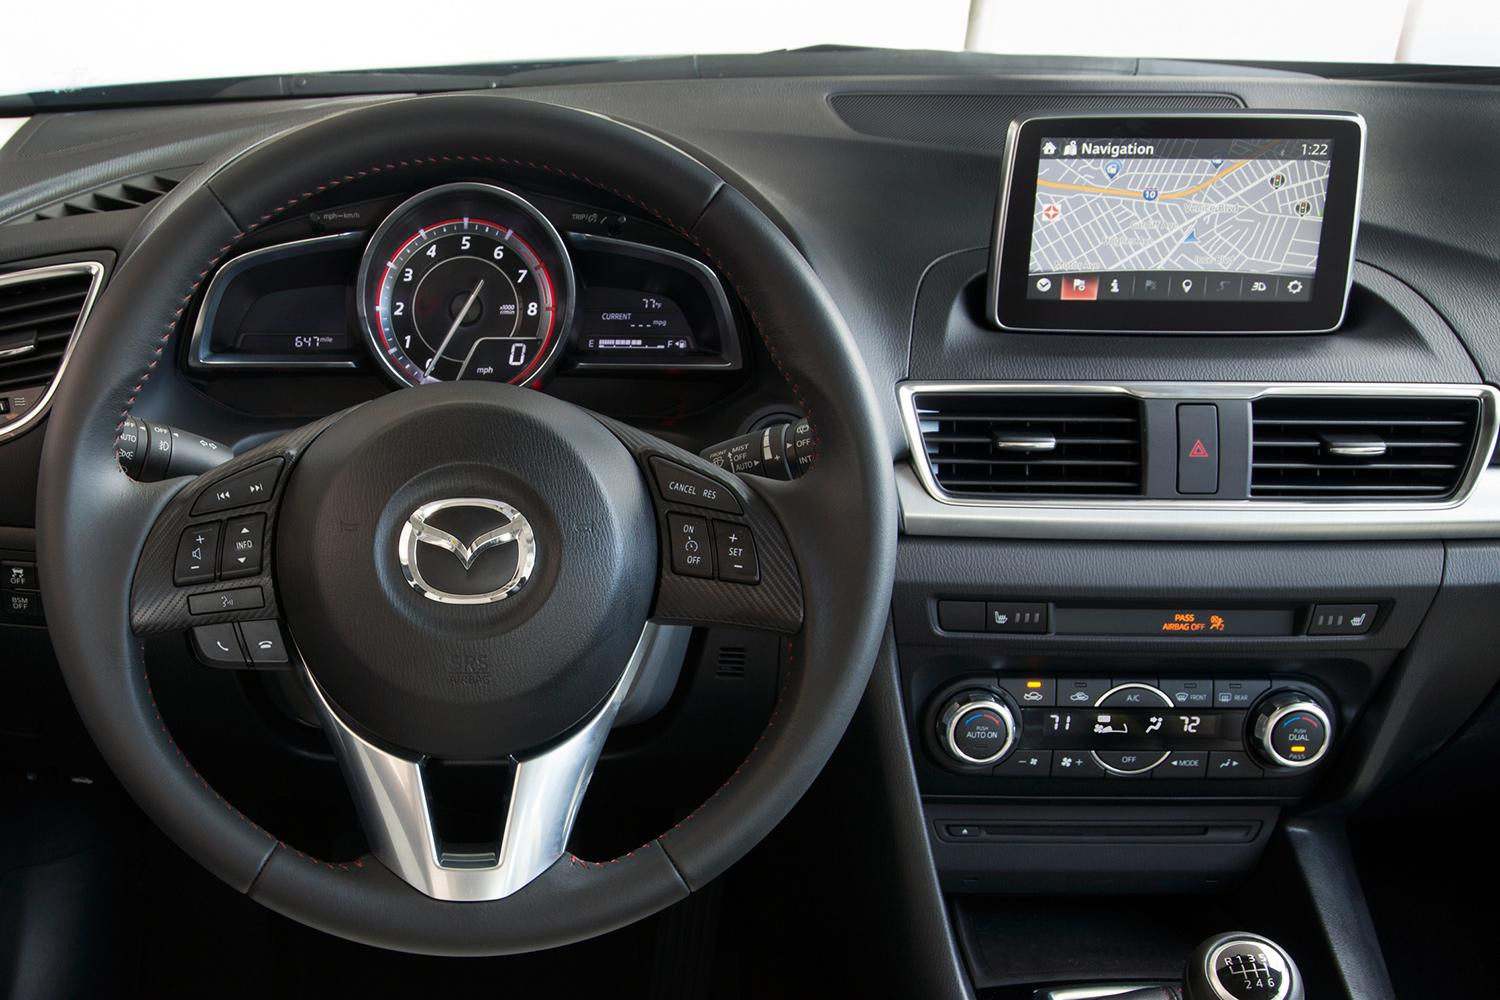 Mazda Connect finalmente tendrá soporte para CarPlay